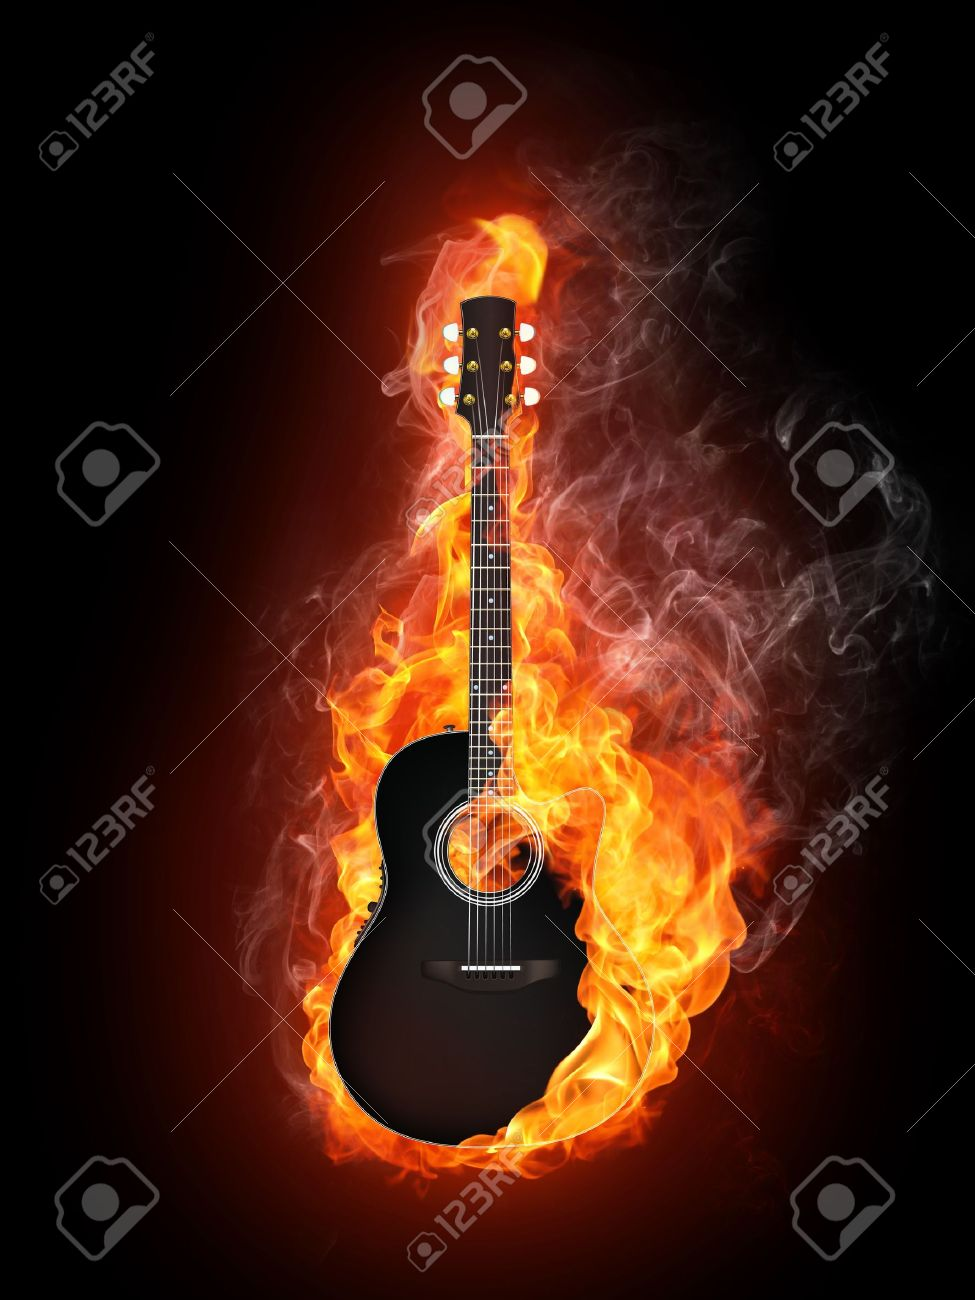 Acoustic - Electric Guitar in Fire Flame Isolated on Black Background Stock Photo - 7333548